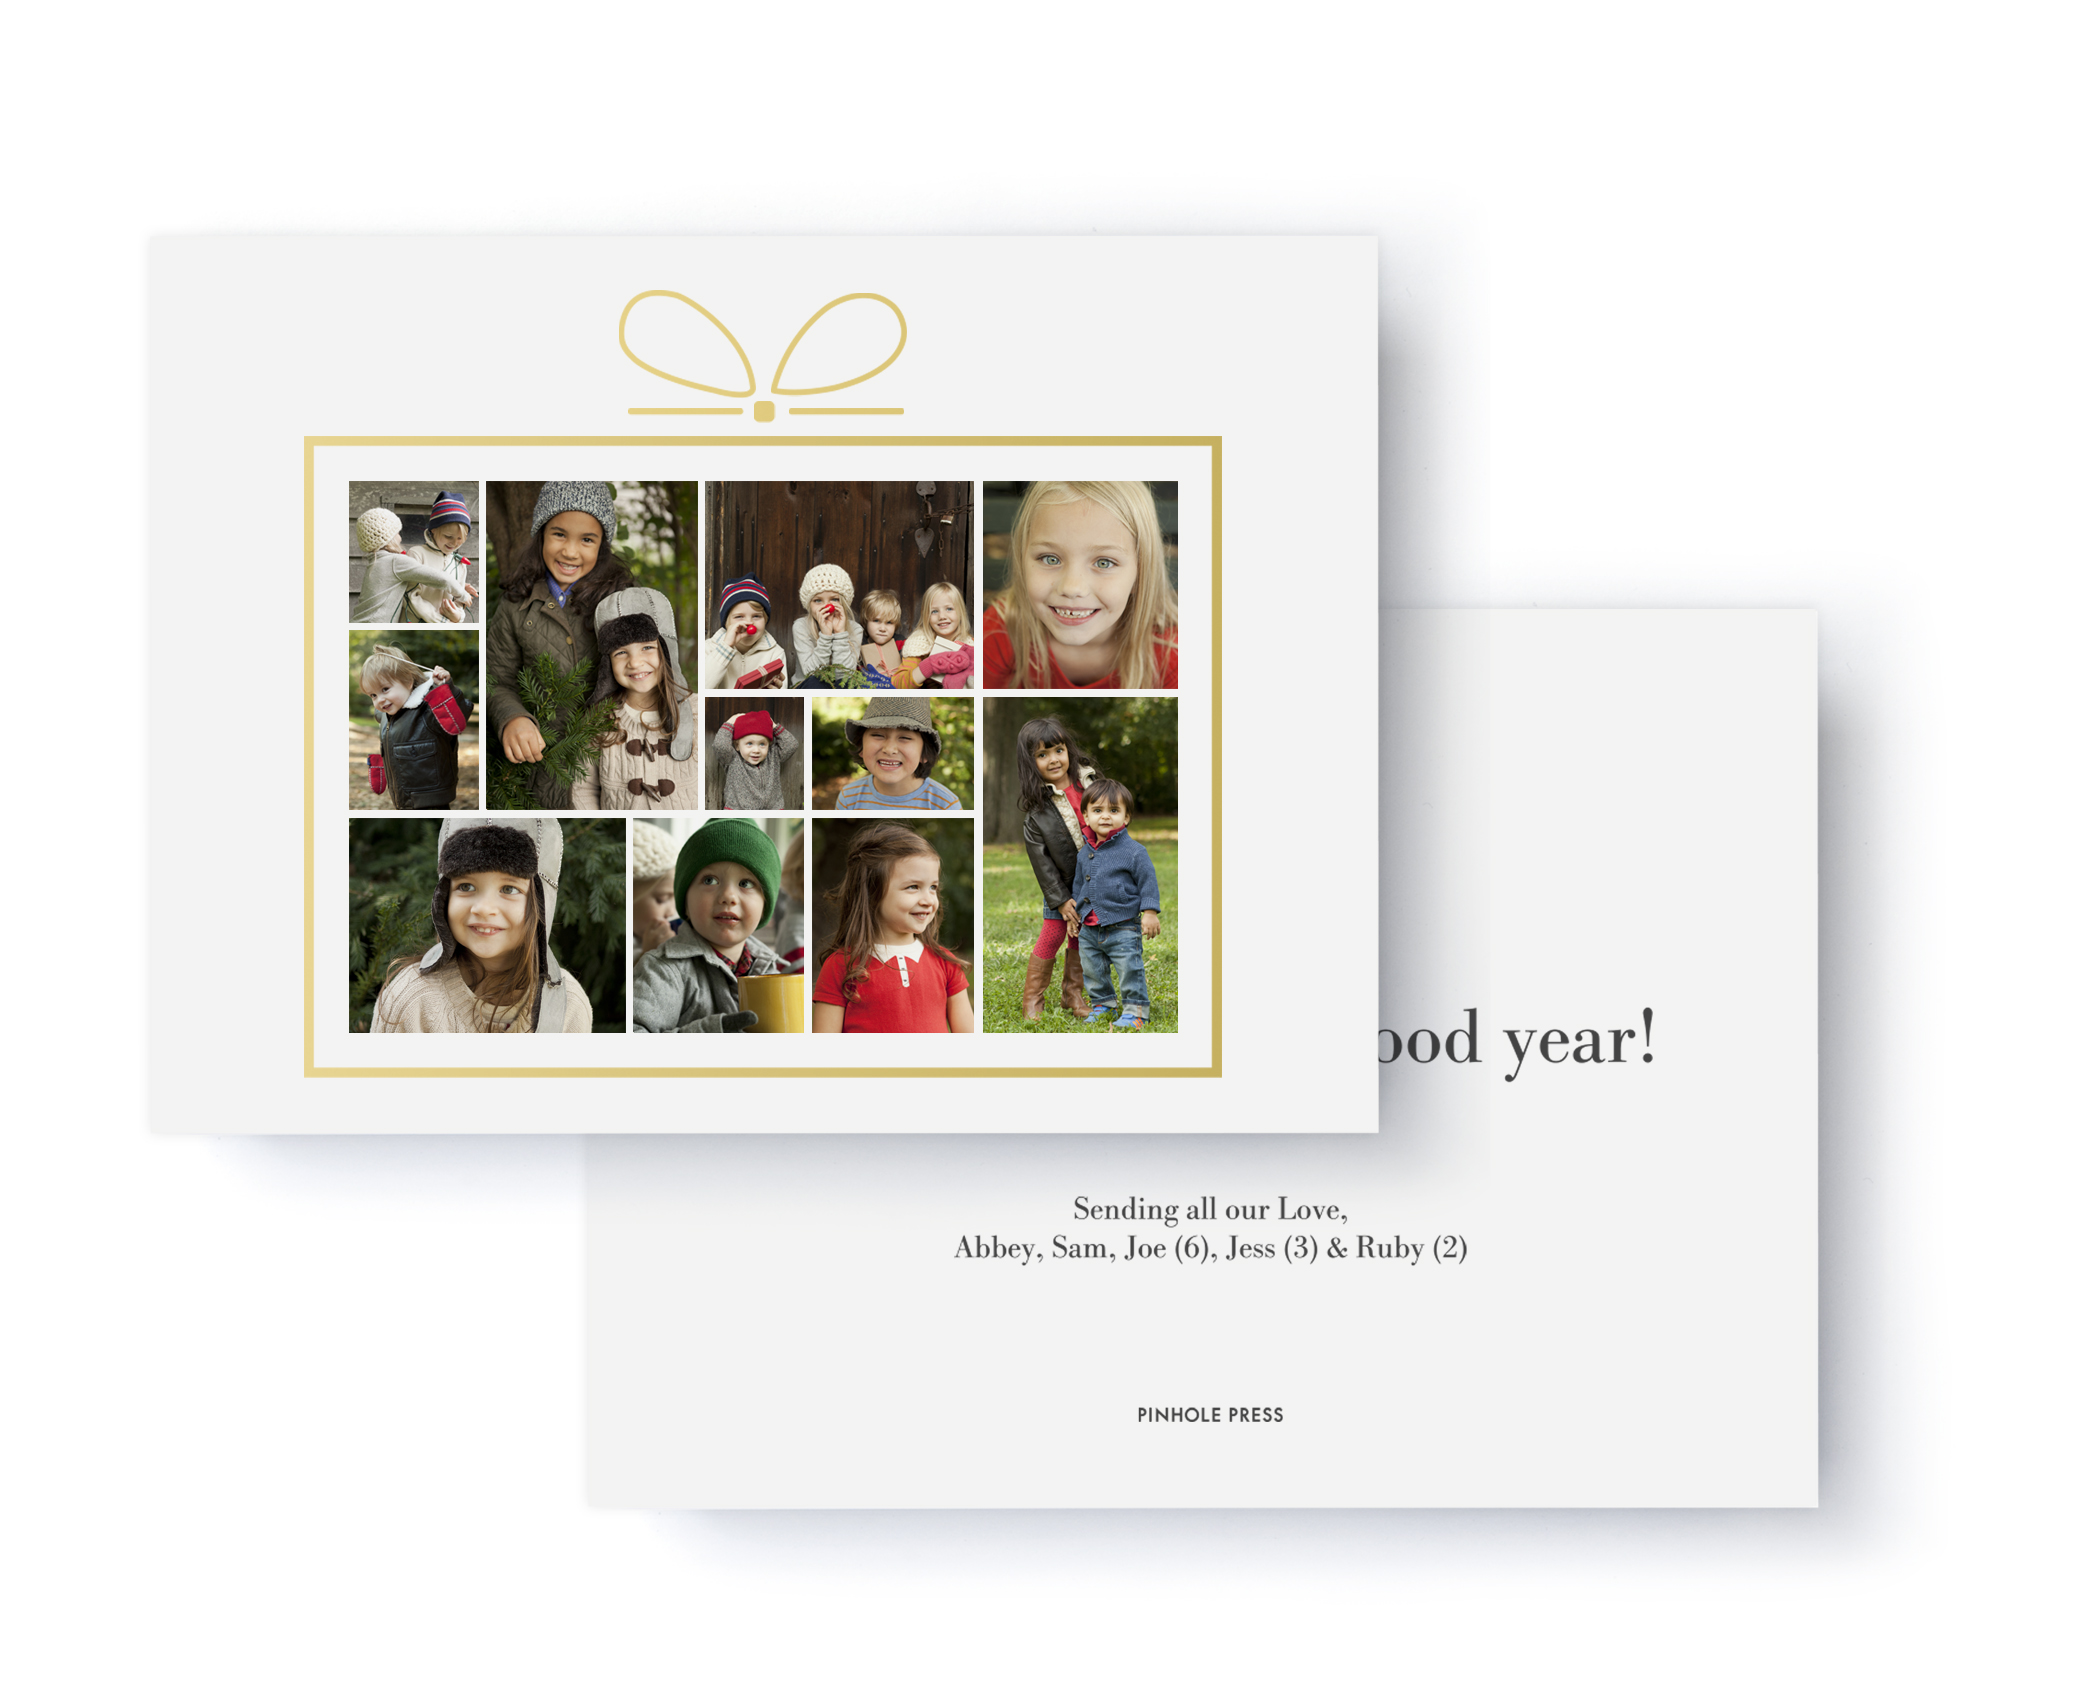 GoldFoil-Present-Collage-HolidayCard.jpg